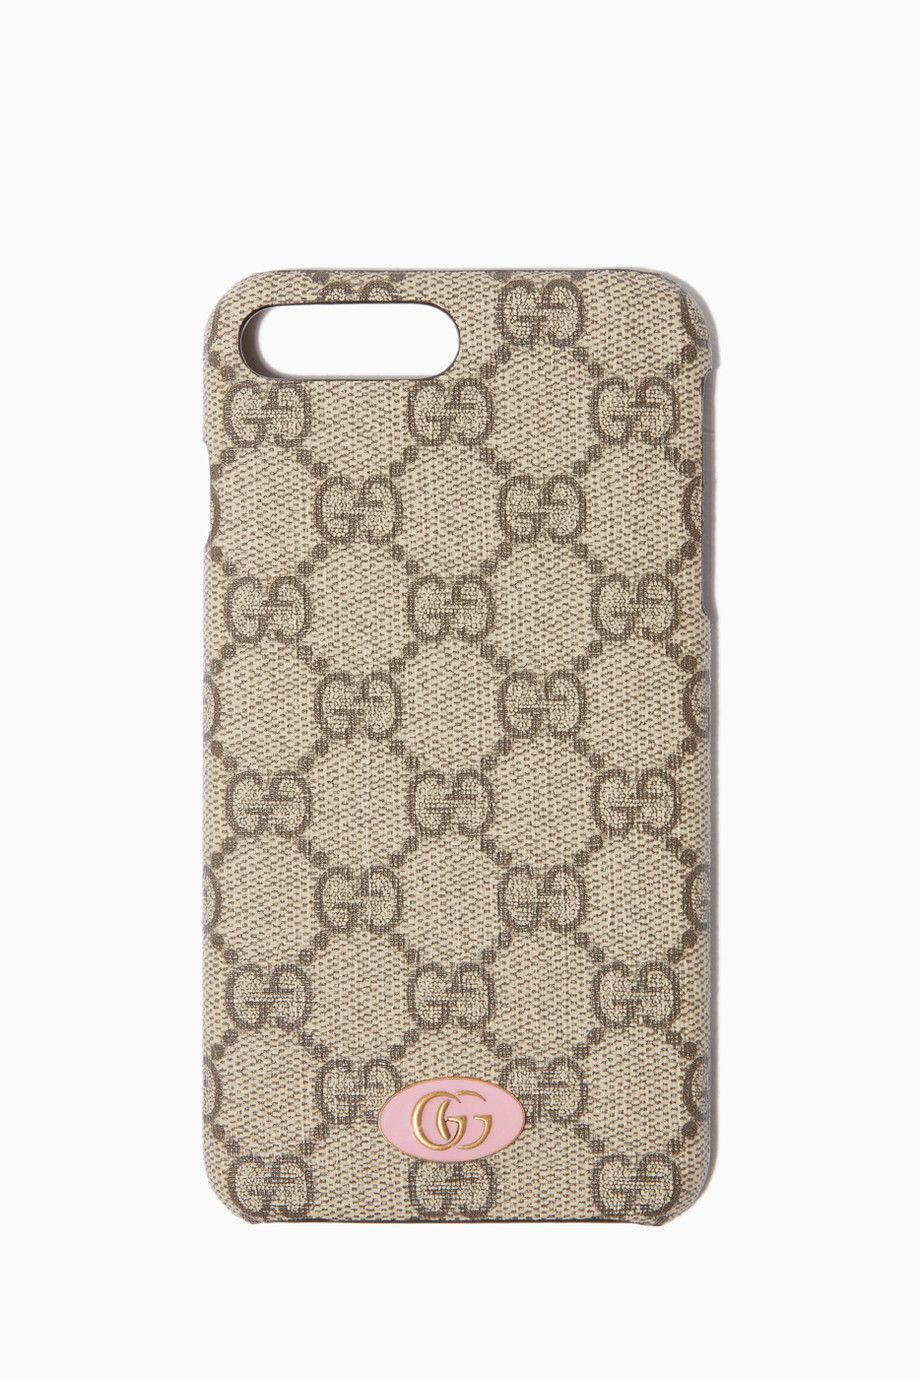 caaad5f37d2 Shop Luxury Gucci Brown GG Supreme Logo iPhone® 8 Plus Case